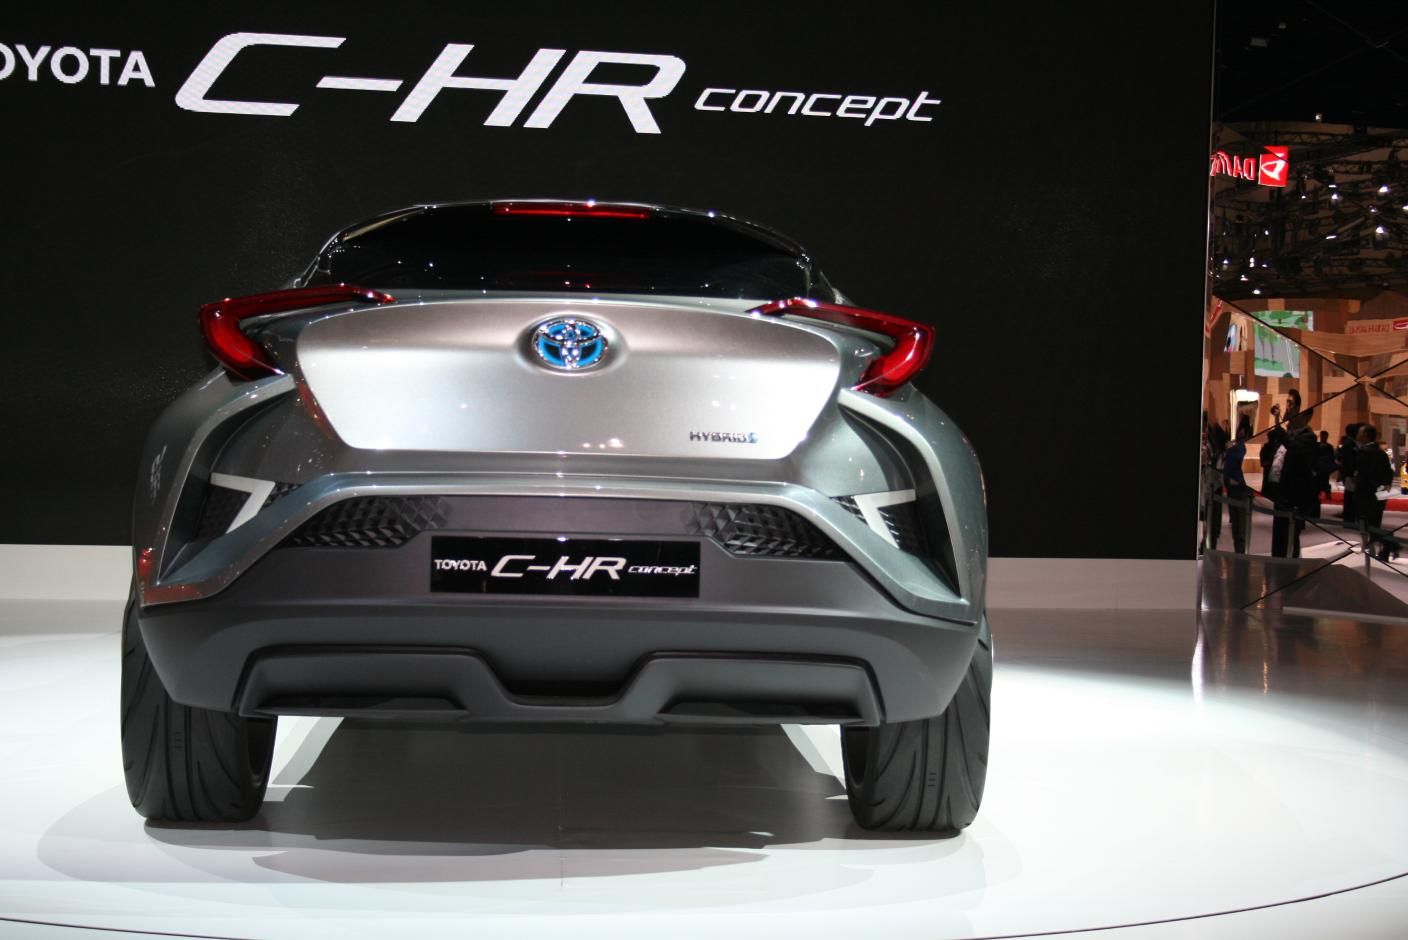 2014 Toyota Camry Hybrid >> Toyota Says C-HR Will Debut at Geneva 2016, Shows Concept in Tokyo - autoevolution